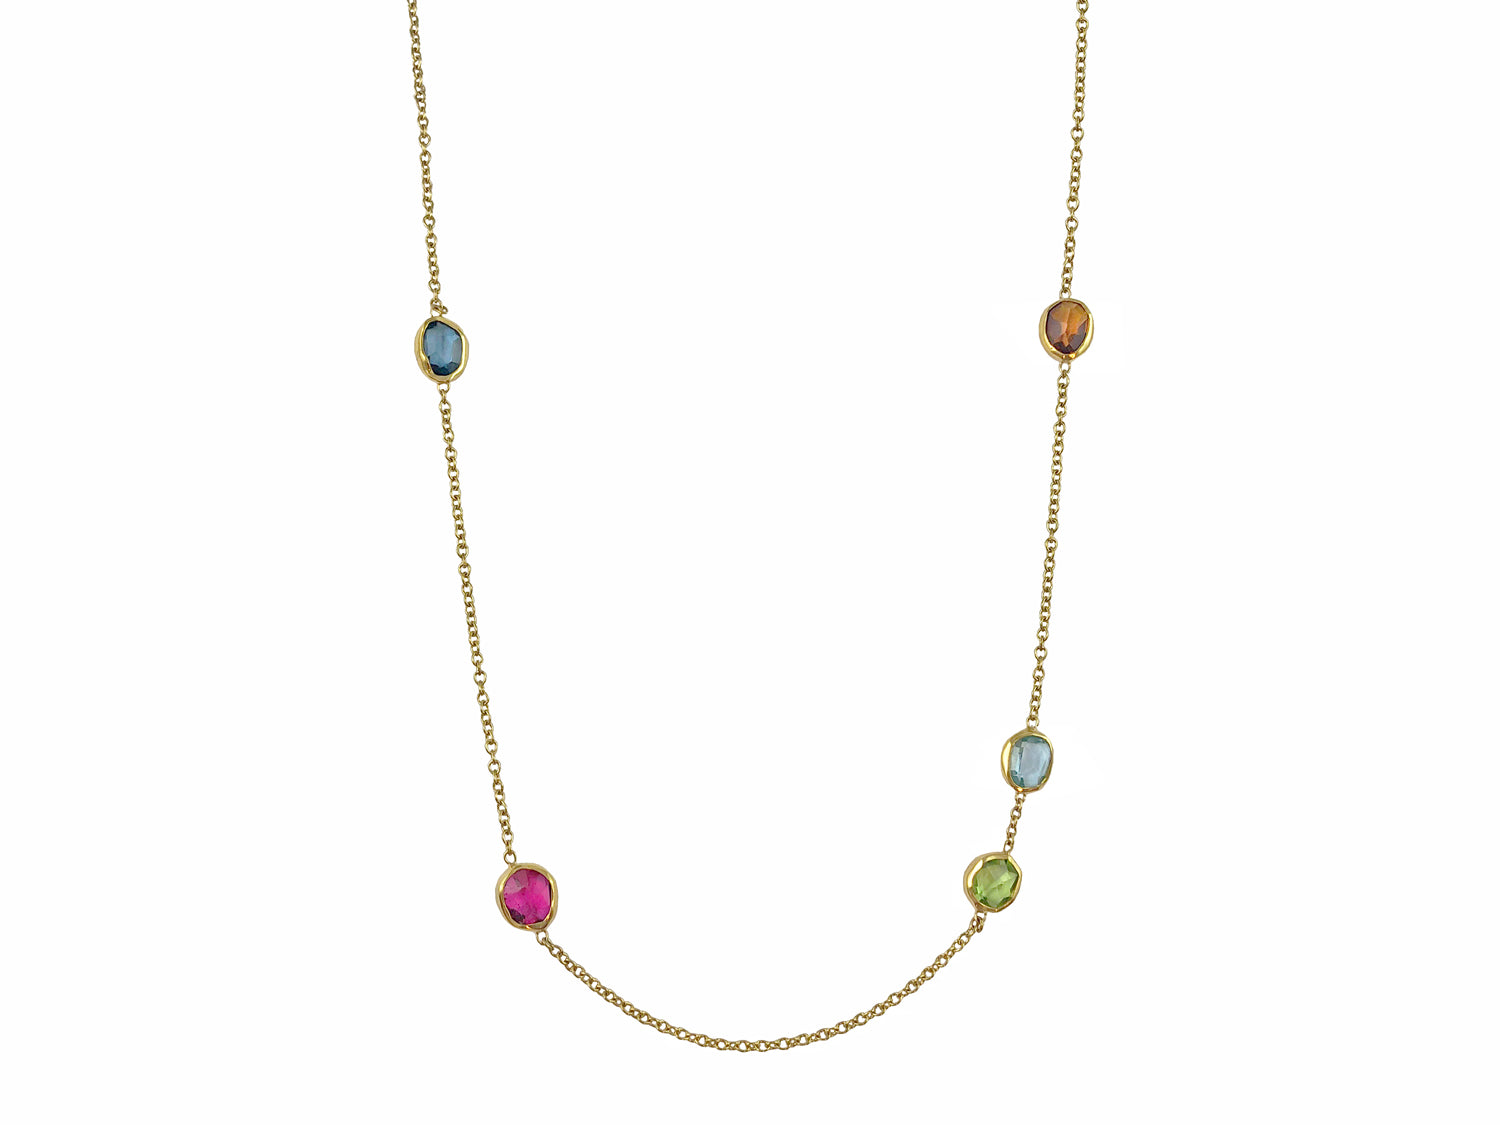 Citrine, Aquamarine, Red Tourmaline, Peridot and London Blue Topaz Necklace